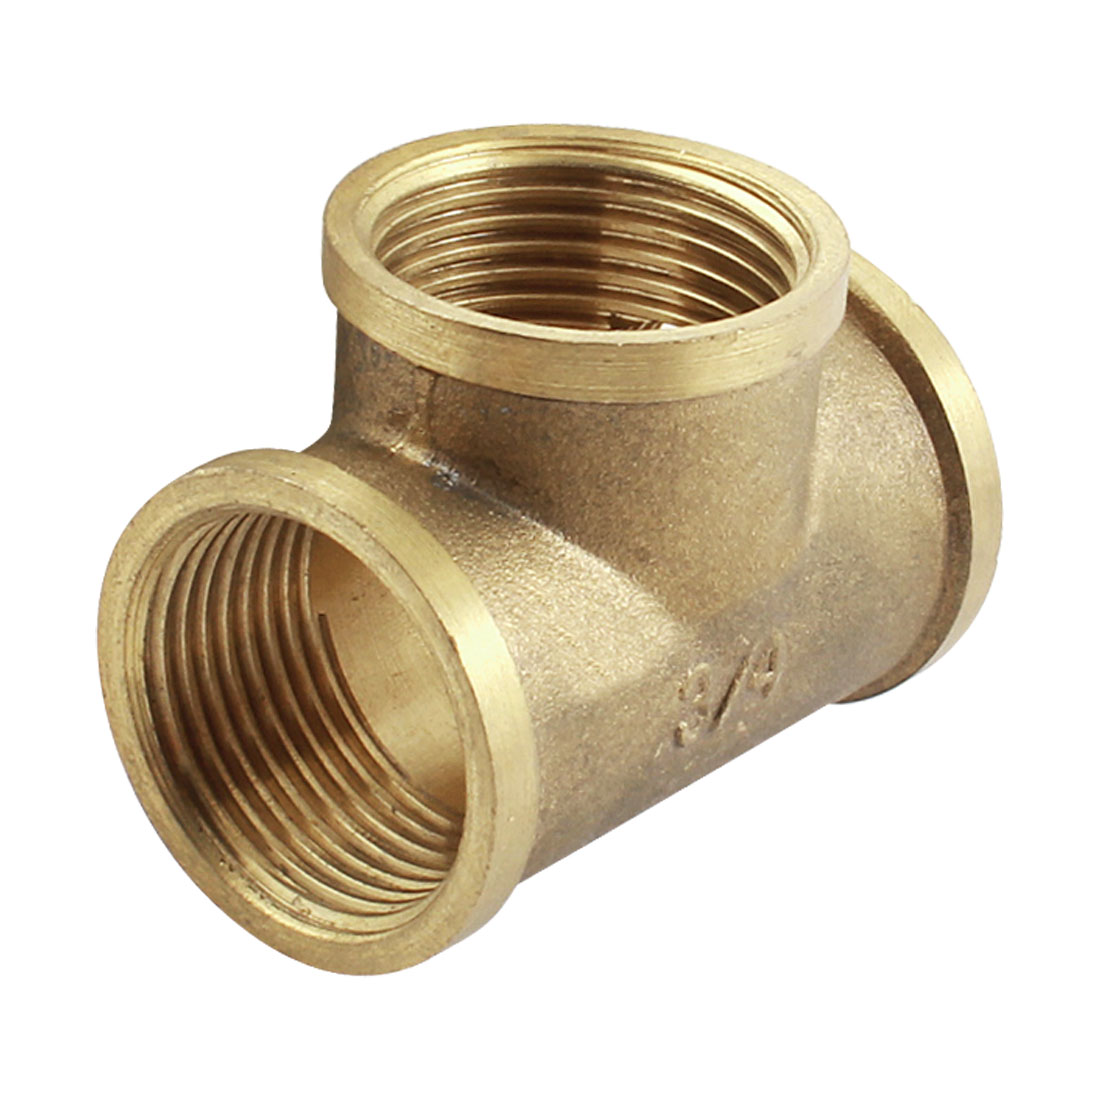 3/4PT to 3/4PT F/F Thread T-Shaped Air Pneumatic Quick Coupler Fitting Connector Coupling Joint